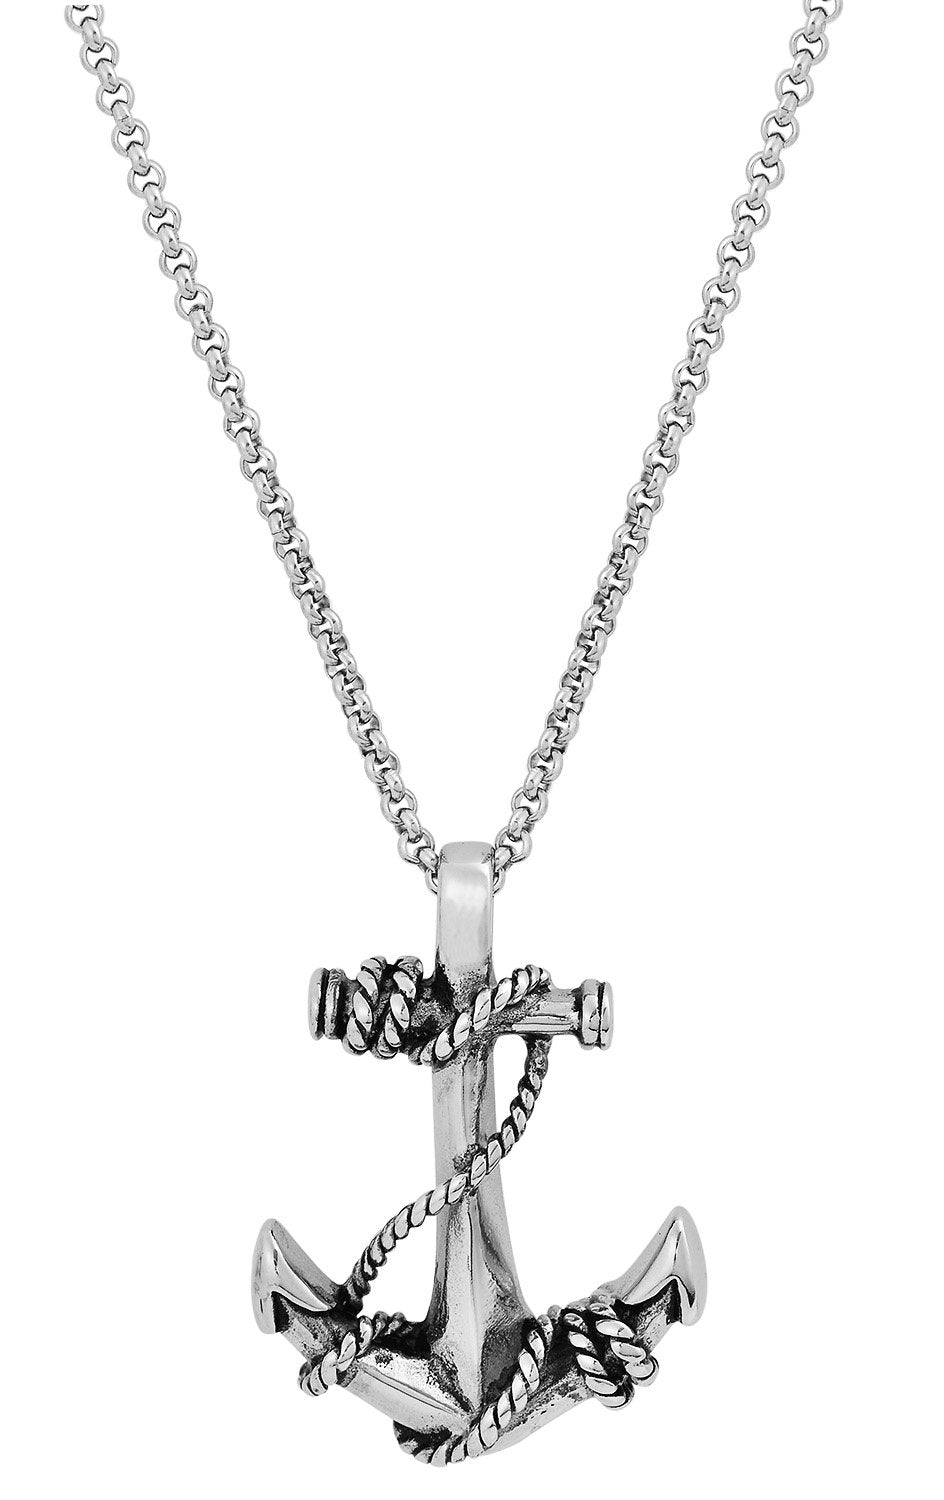 Stainless Steel Roped Anchor Necklace